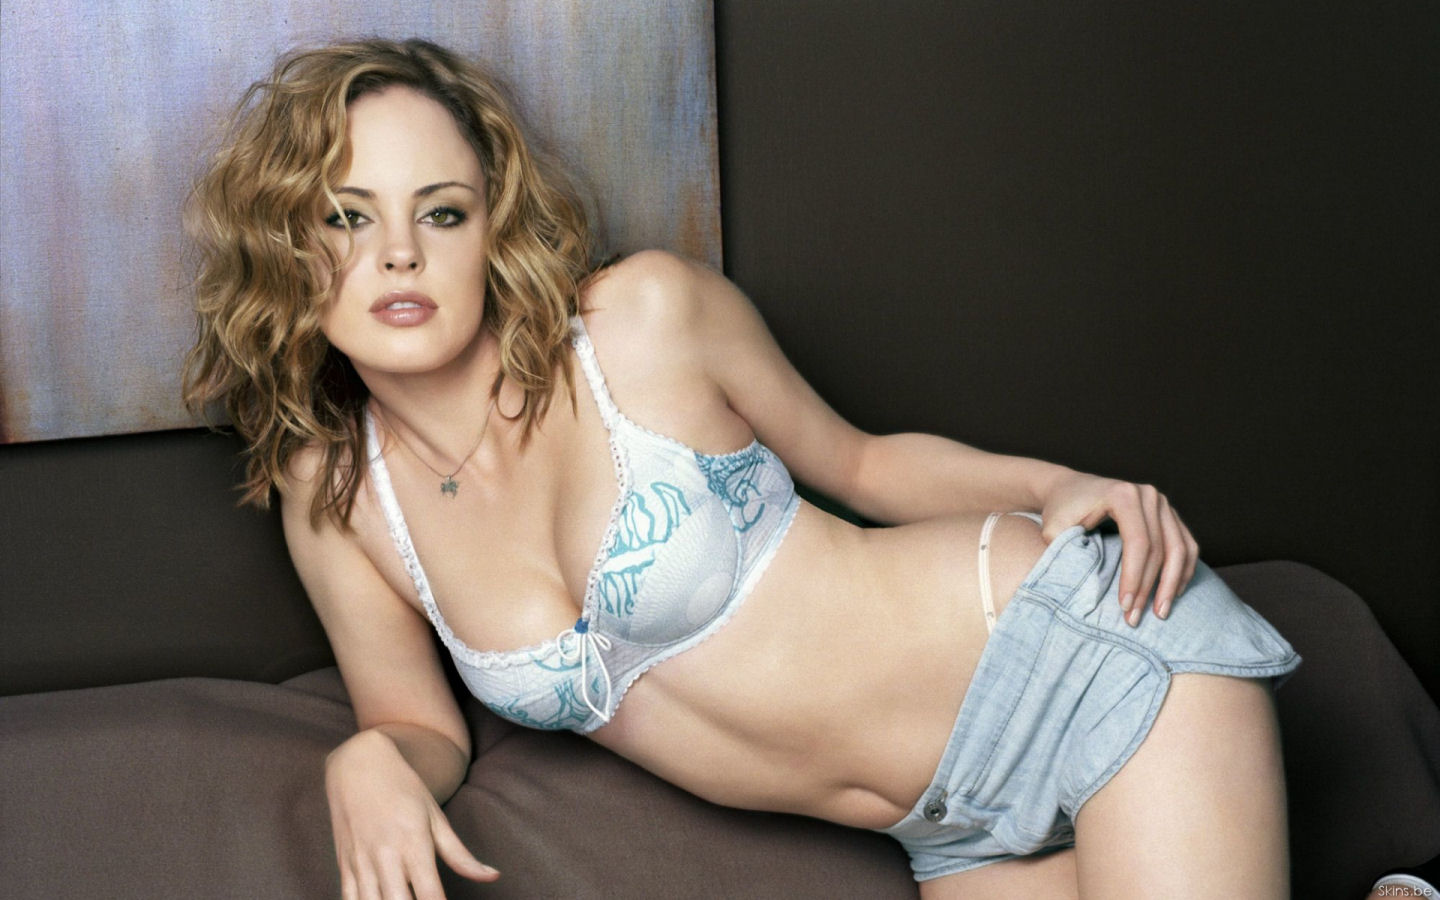 Chandra West wallpaper (#26950)